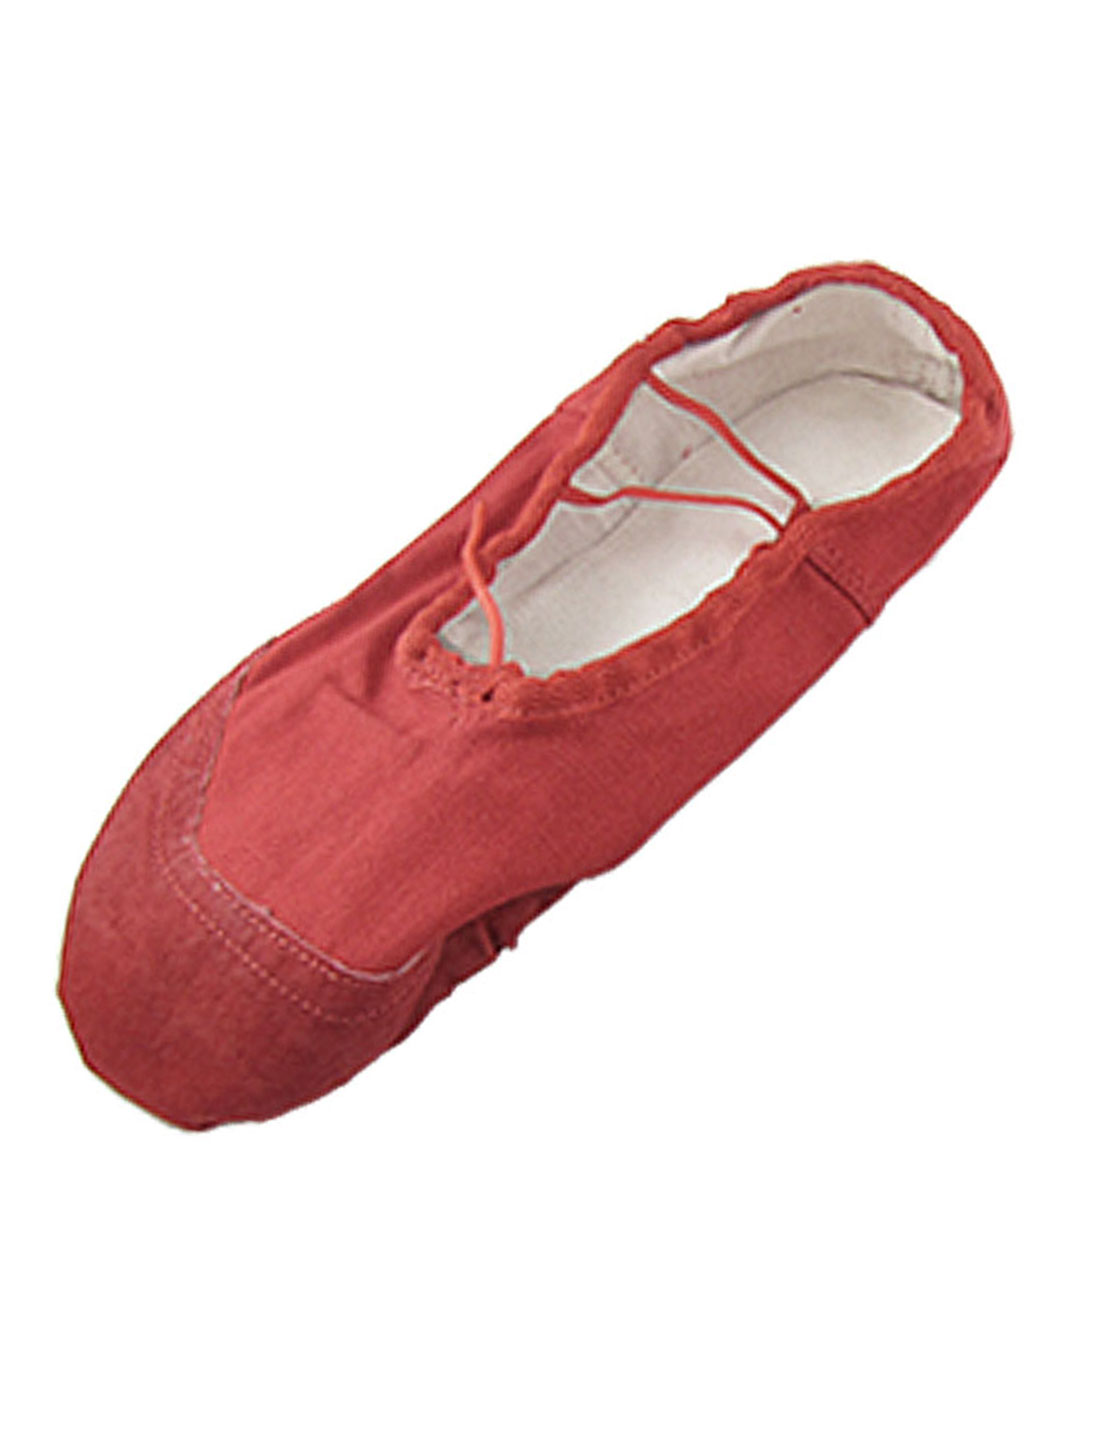 Ladies Dancing Ballet Red Crossover Elastic Band Flat Shoes US Size 7.5